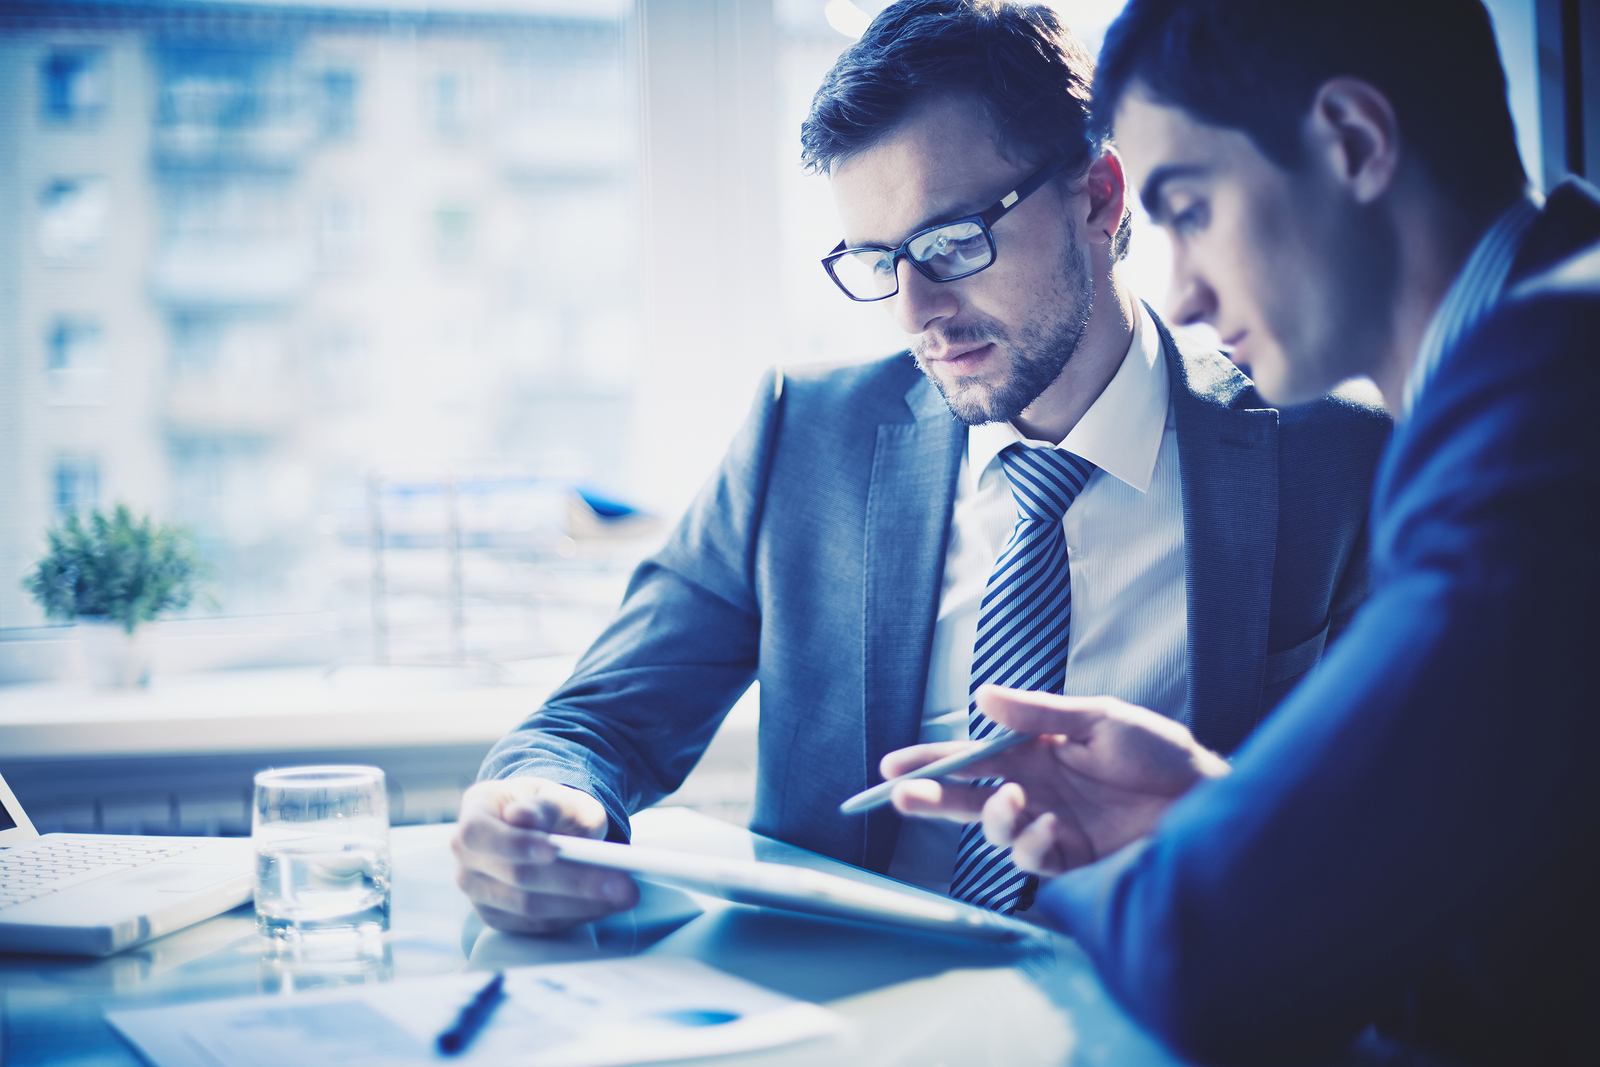 bigstock-Image-of-two-young-businessmen-52428133